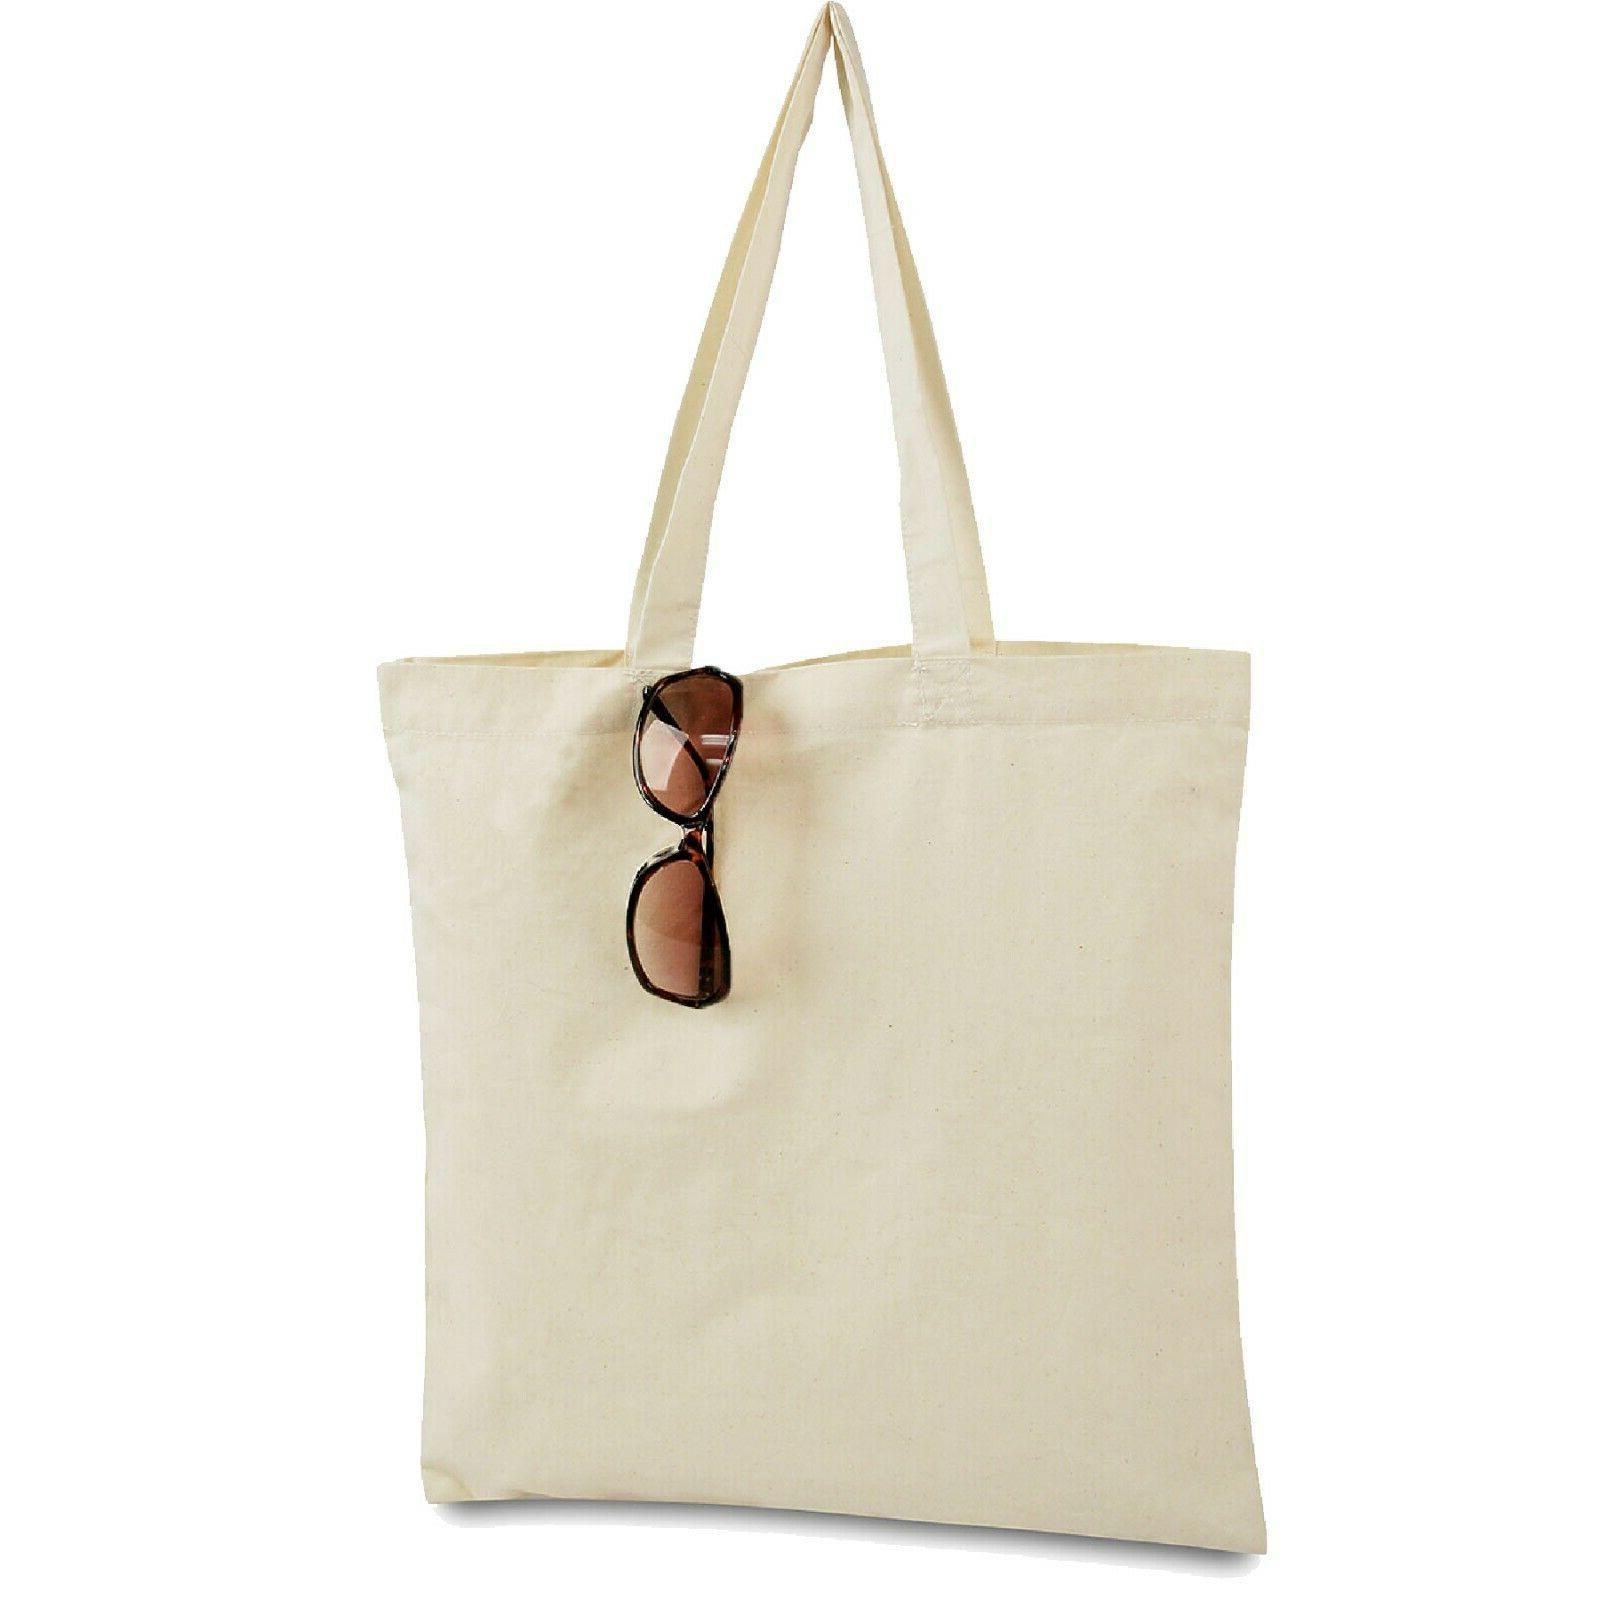 New Tote Bag, Beach Reusable Grocery